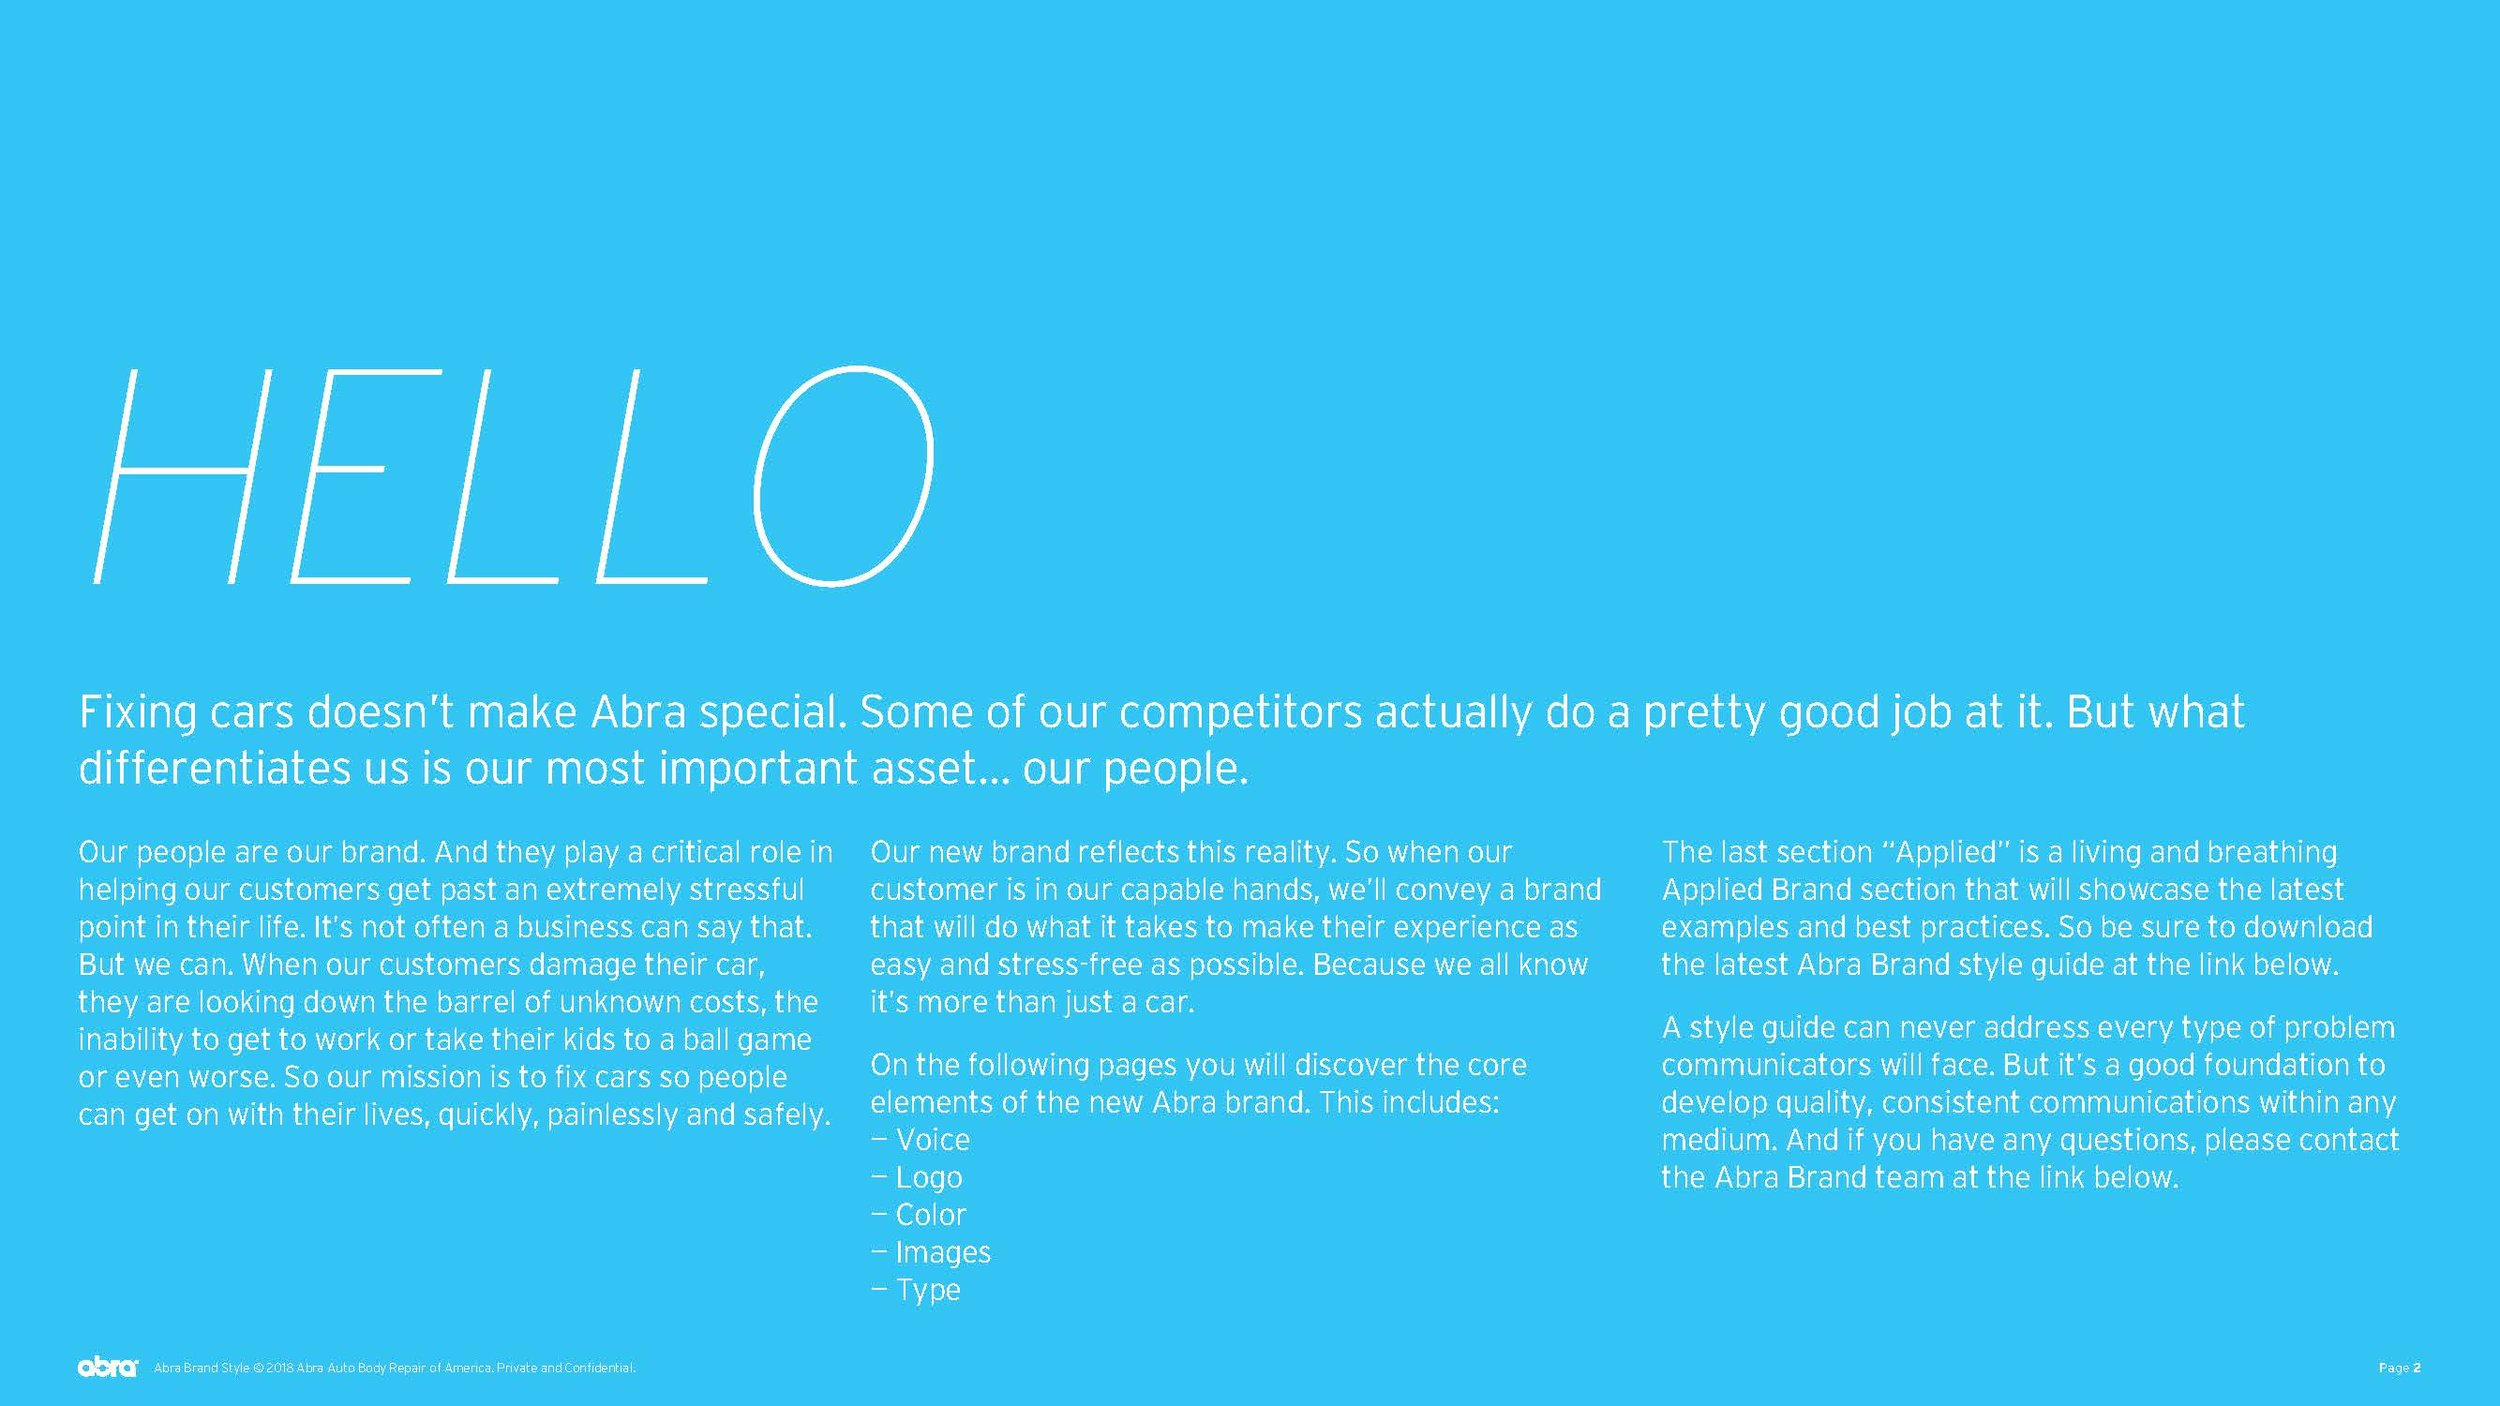 abra brand style guide - R5_Page_02.jpg